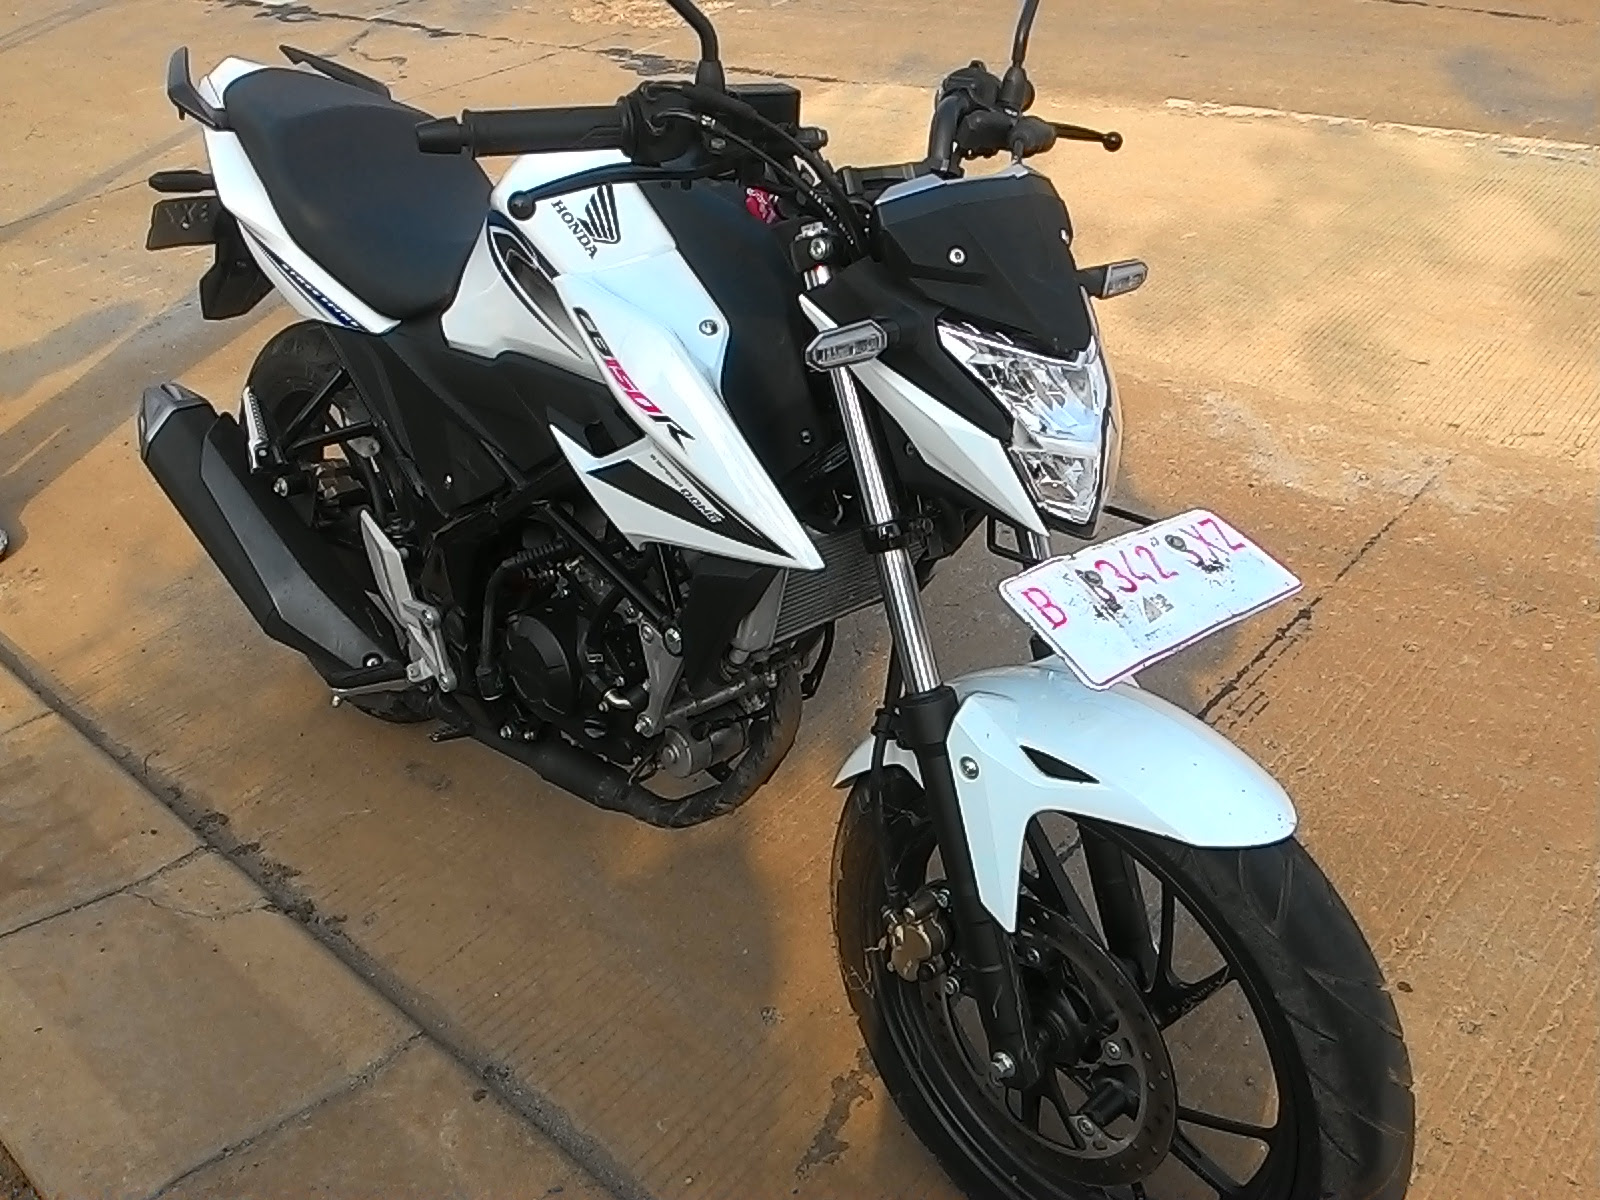 100 Modif Motor All New Cb 150 R Modifikasi Motor Honda CB Terbaru